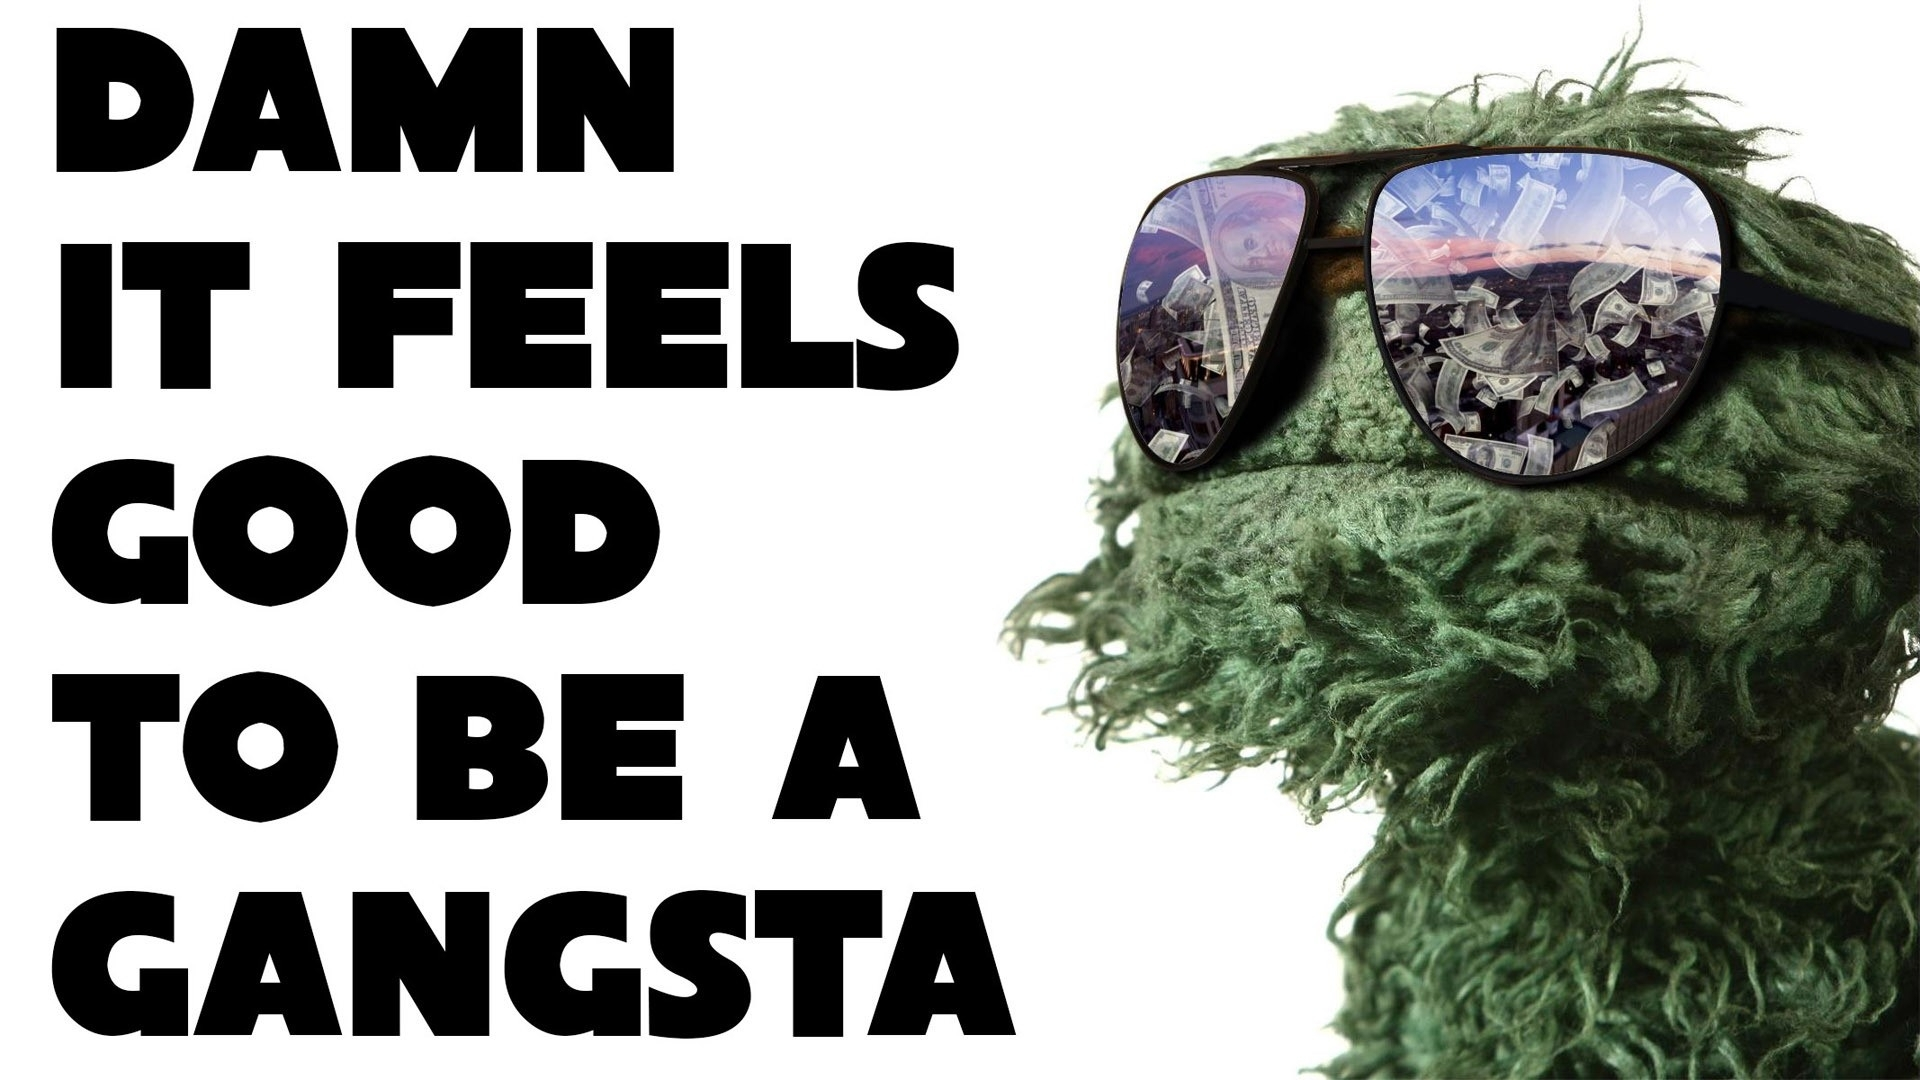 funny: gangsta oscar grouch sesame street cool wallpapers 1920x1080